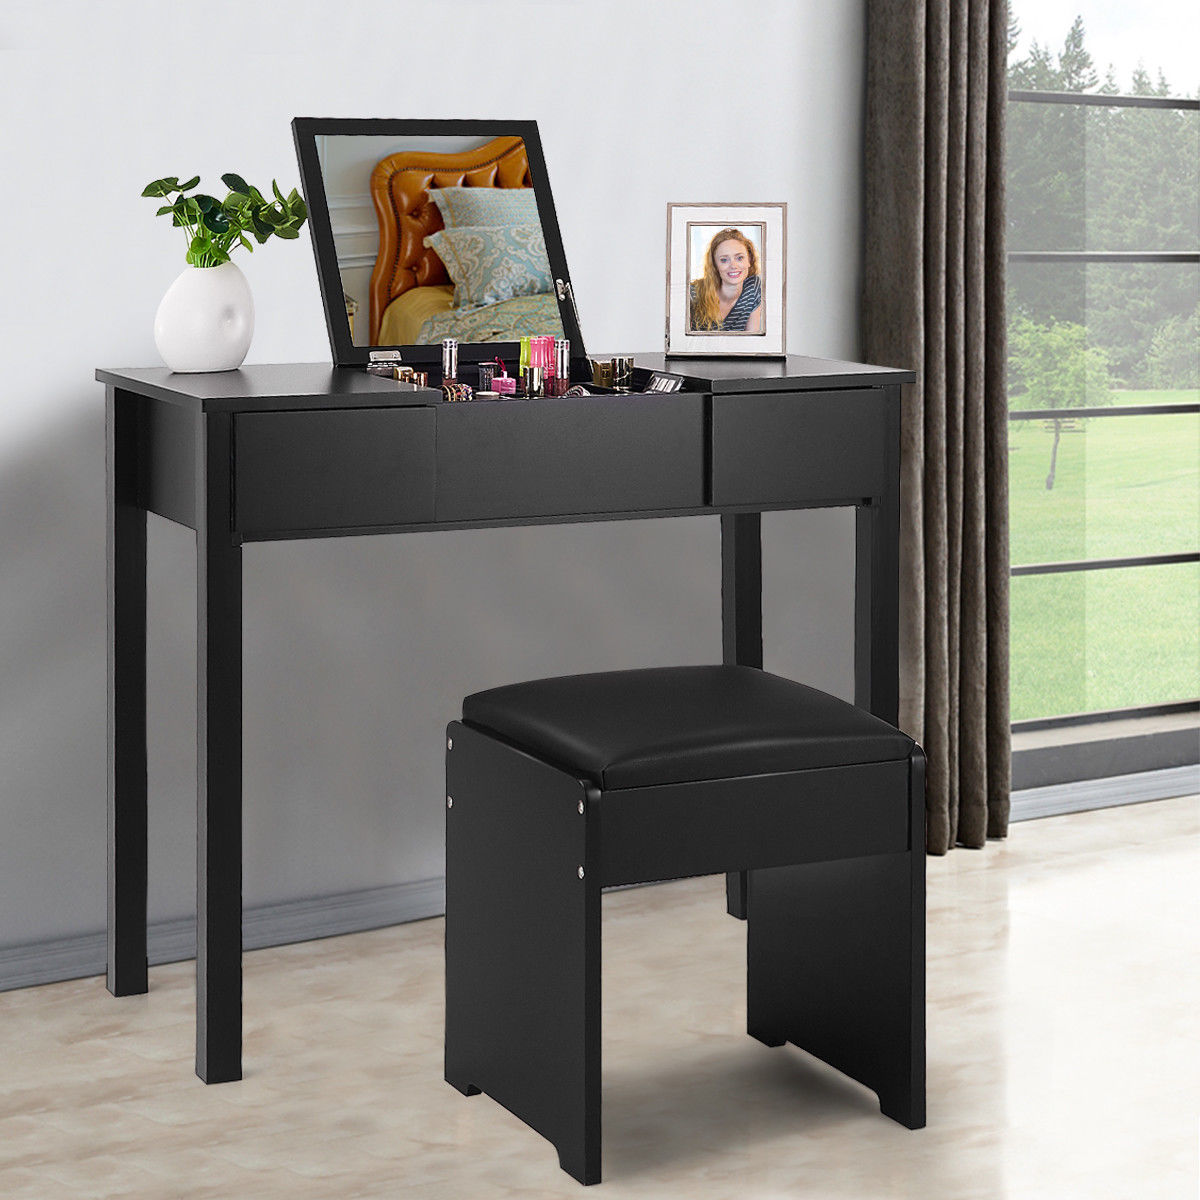 costway black vanity dressing table set mirrored w stool storage box